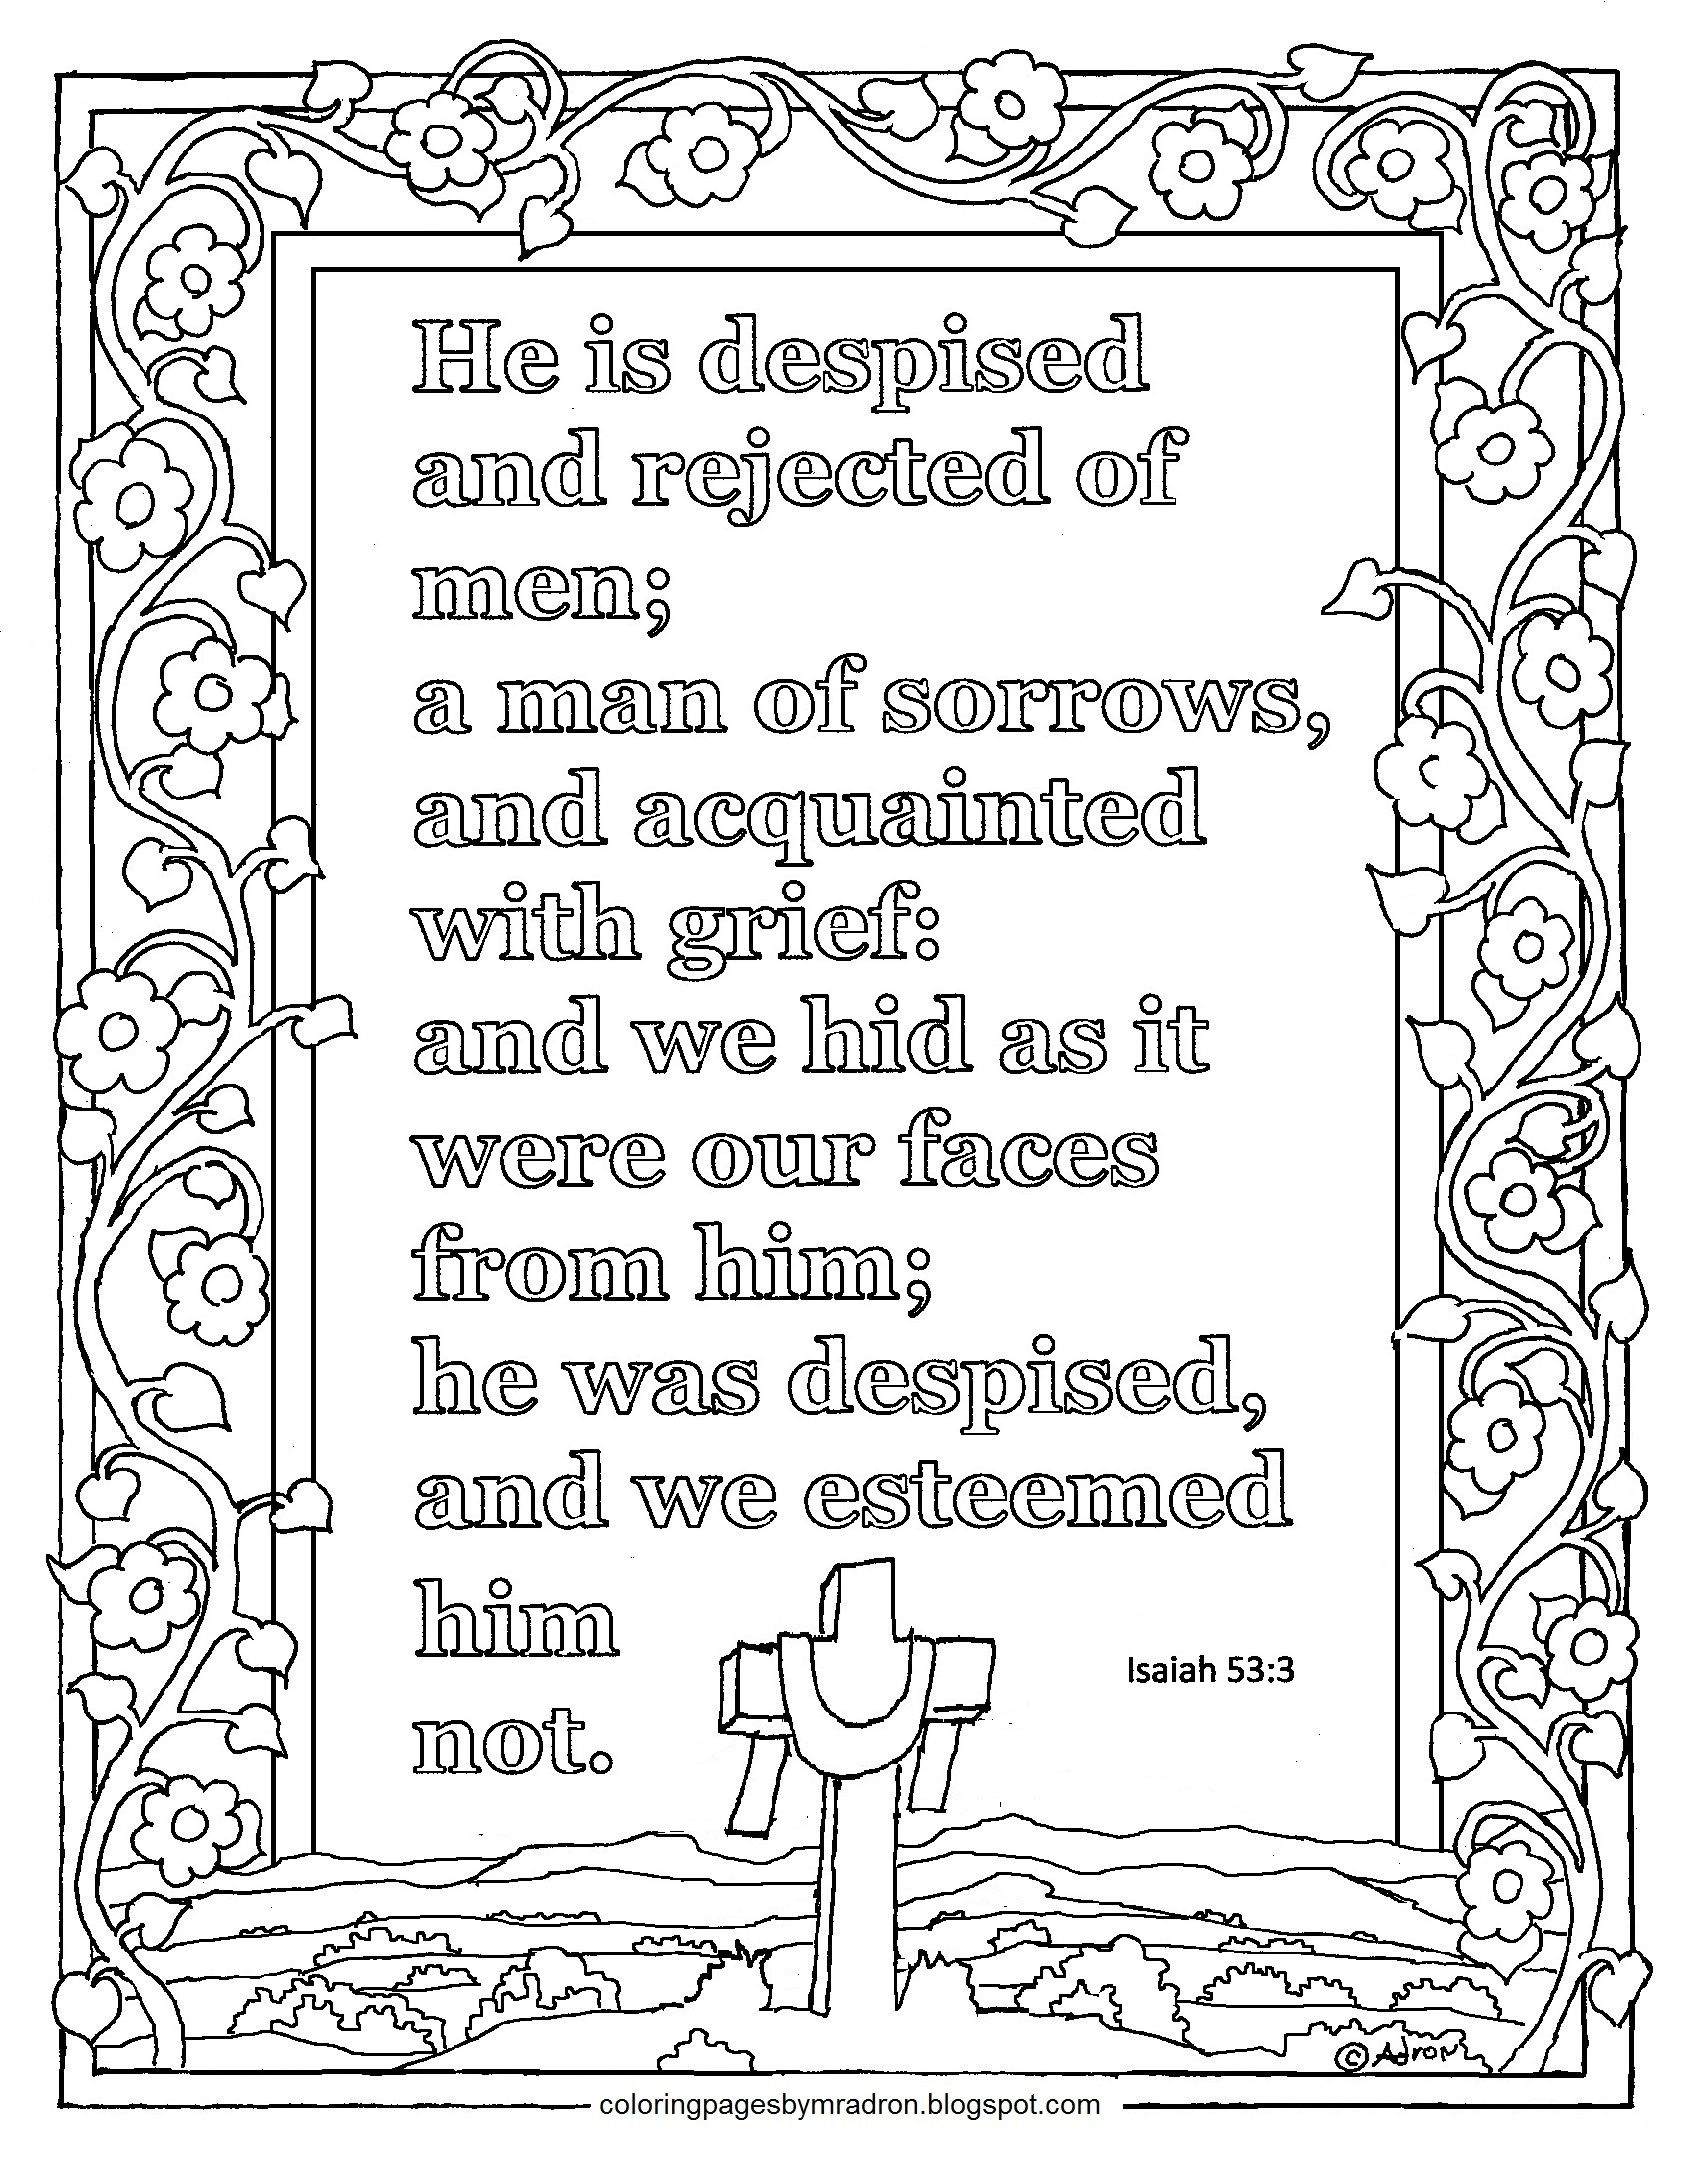 Lent Day 5 Devotional Print And Color Page With Scripture Coloring Pages Bible Verse Coloring Page Printable Coloring Pages